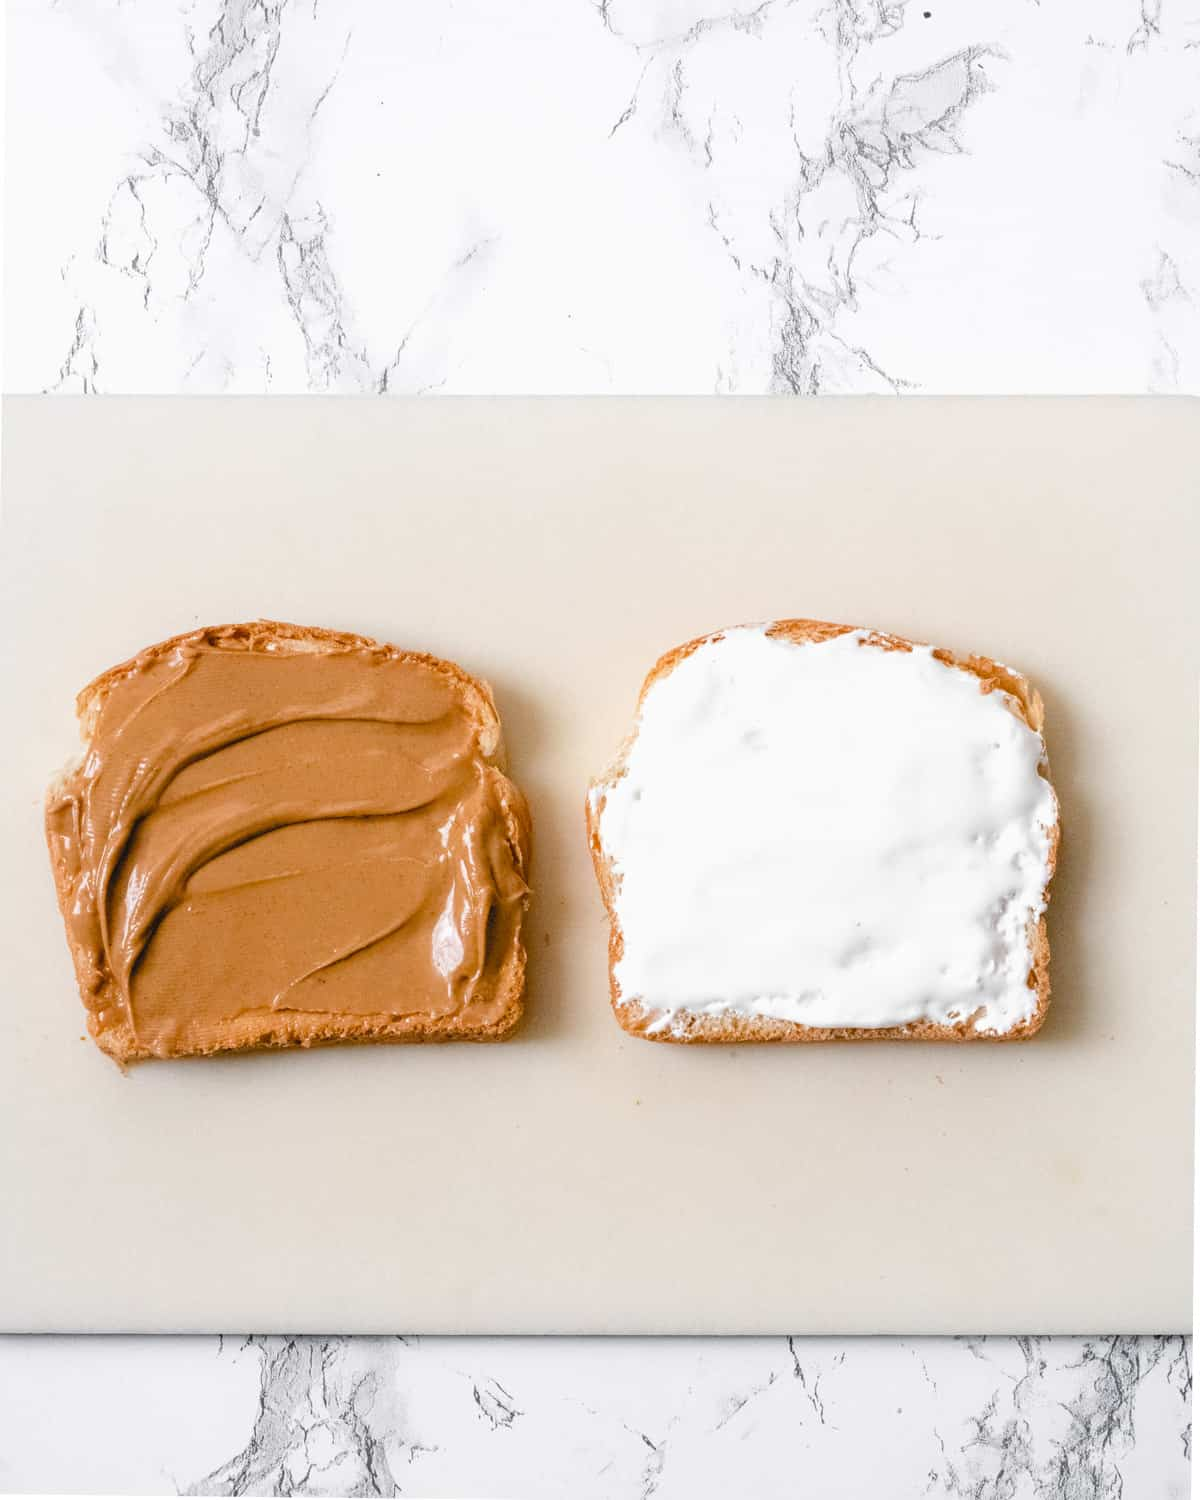 Peanut butter spread on bread on the left, and fluff on the piece of bread on the right.